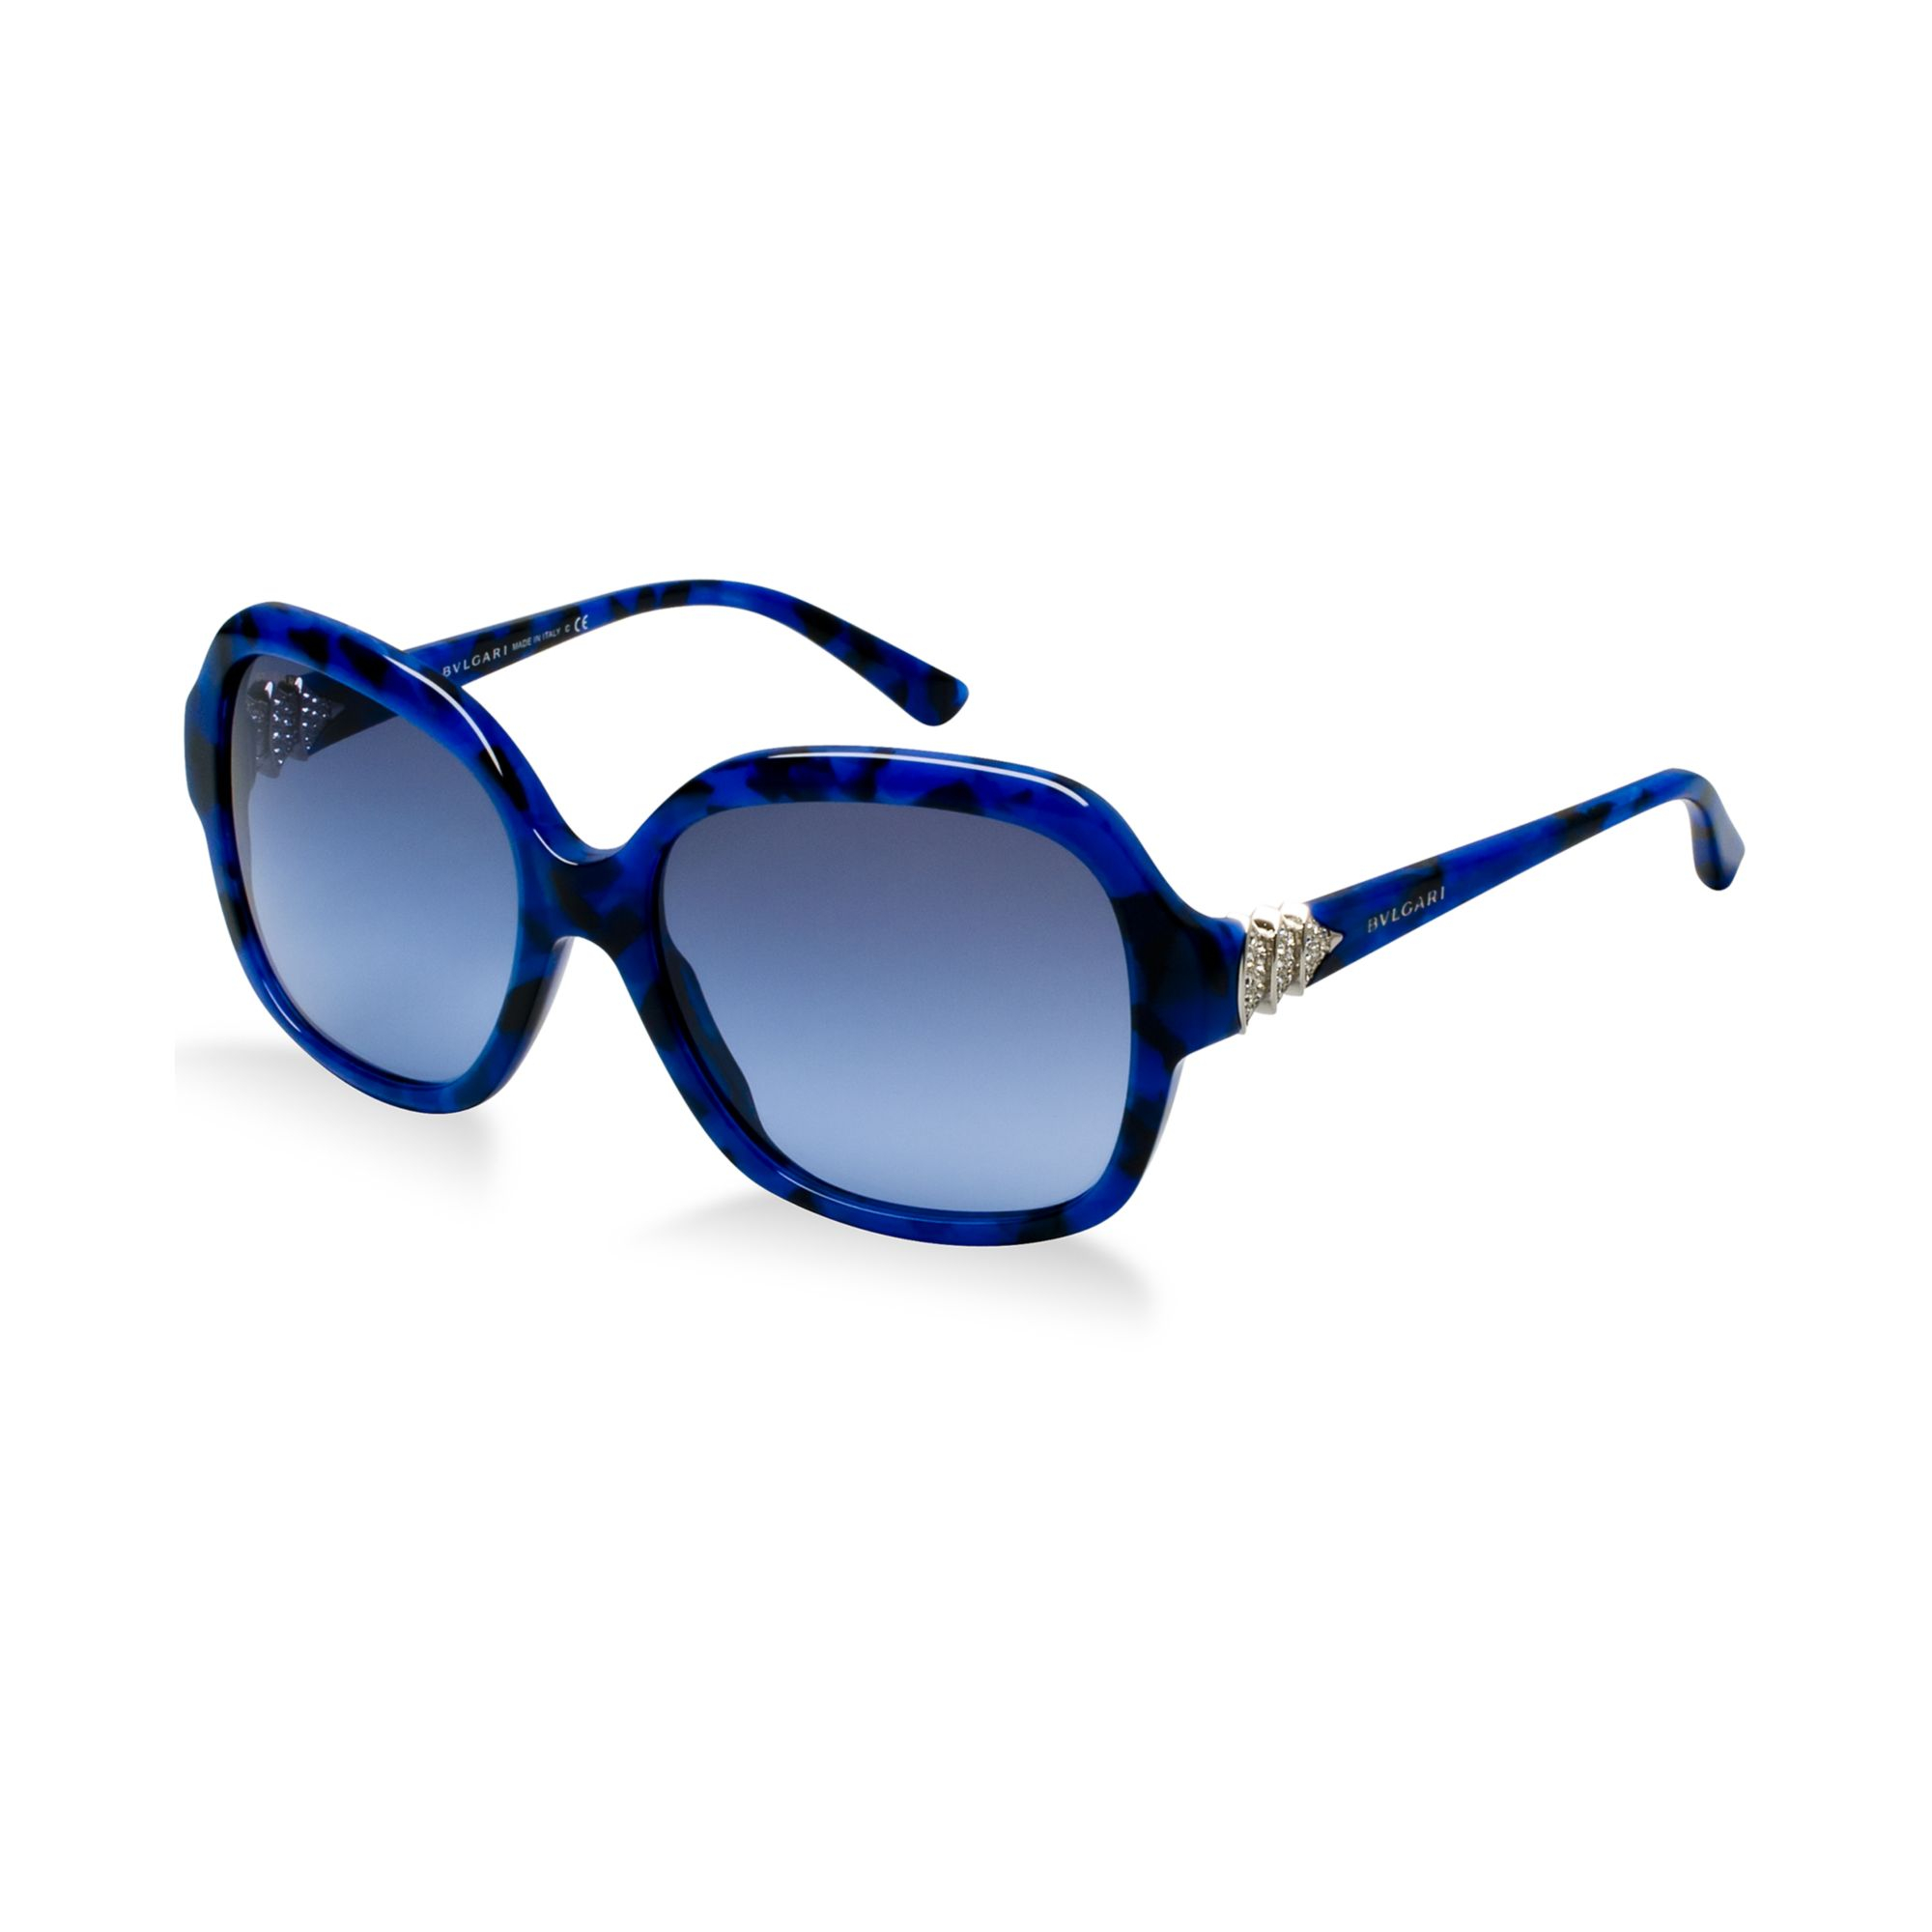 Bvl Sunglasses  bvlgari sunglasses in blue lyst